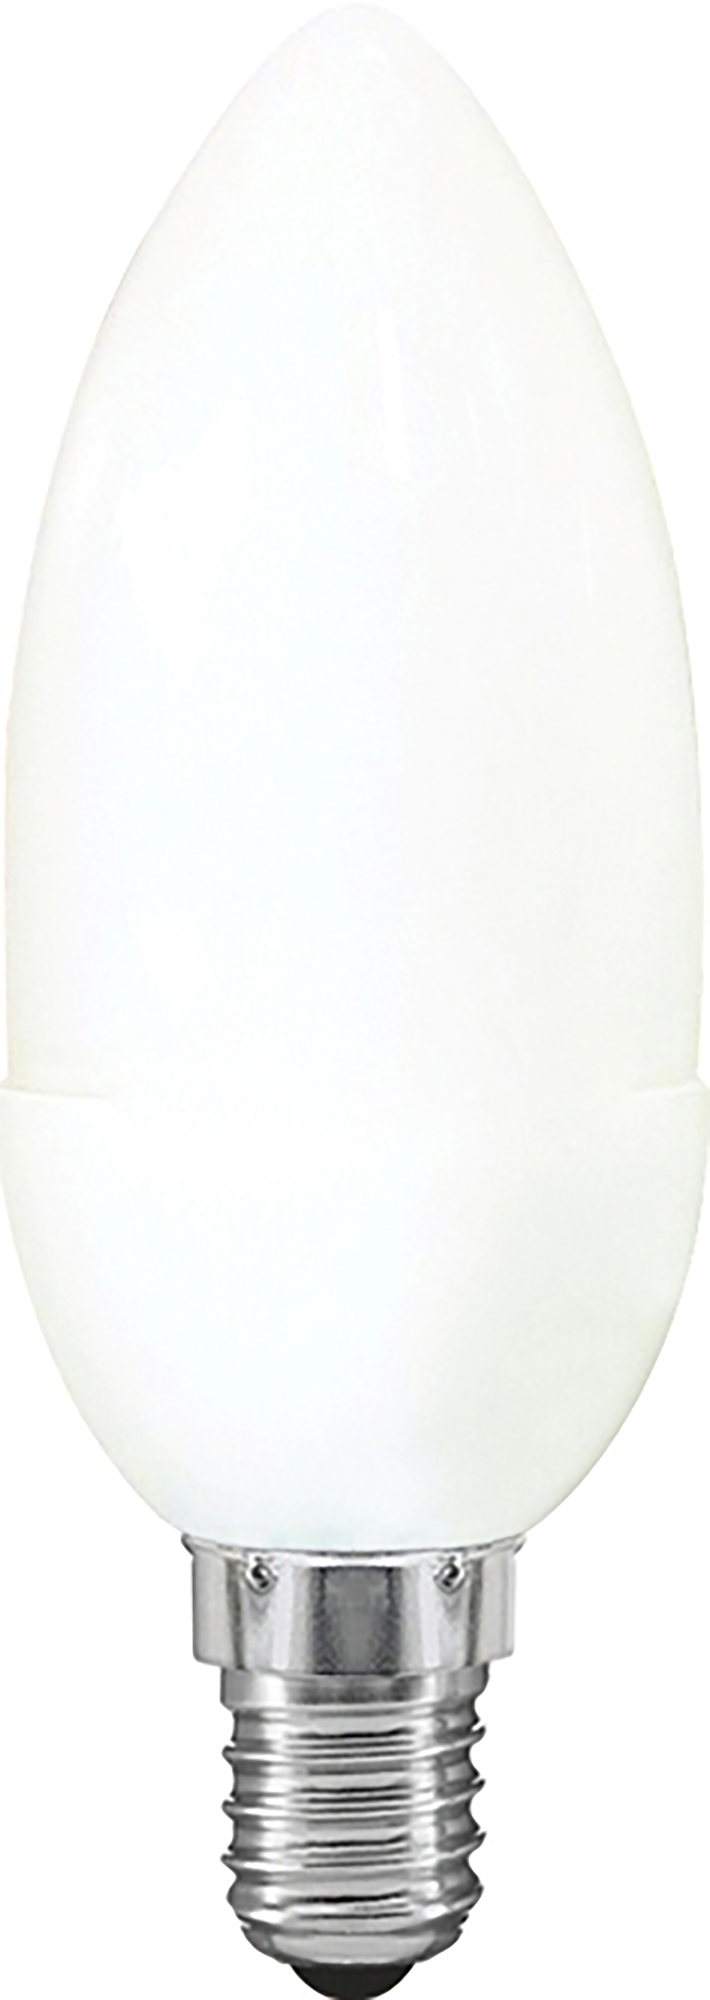 Extra Mini Sup Candle Compact Fluorescent Luxram Candle